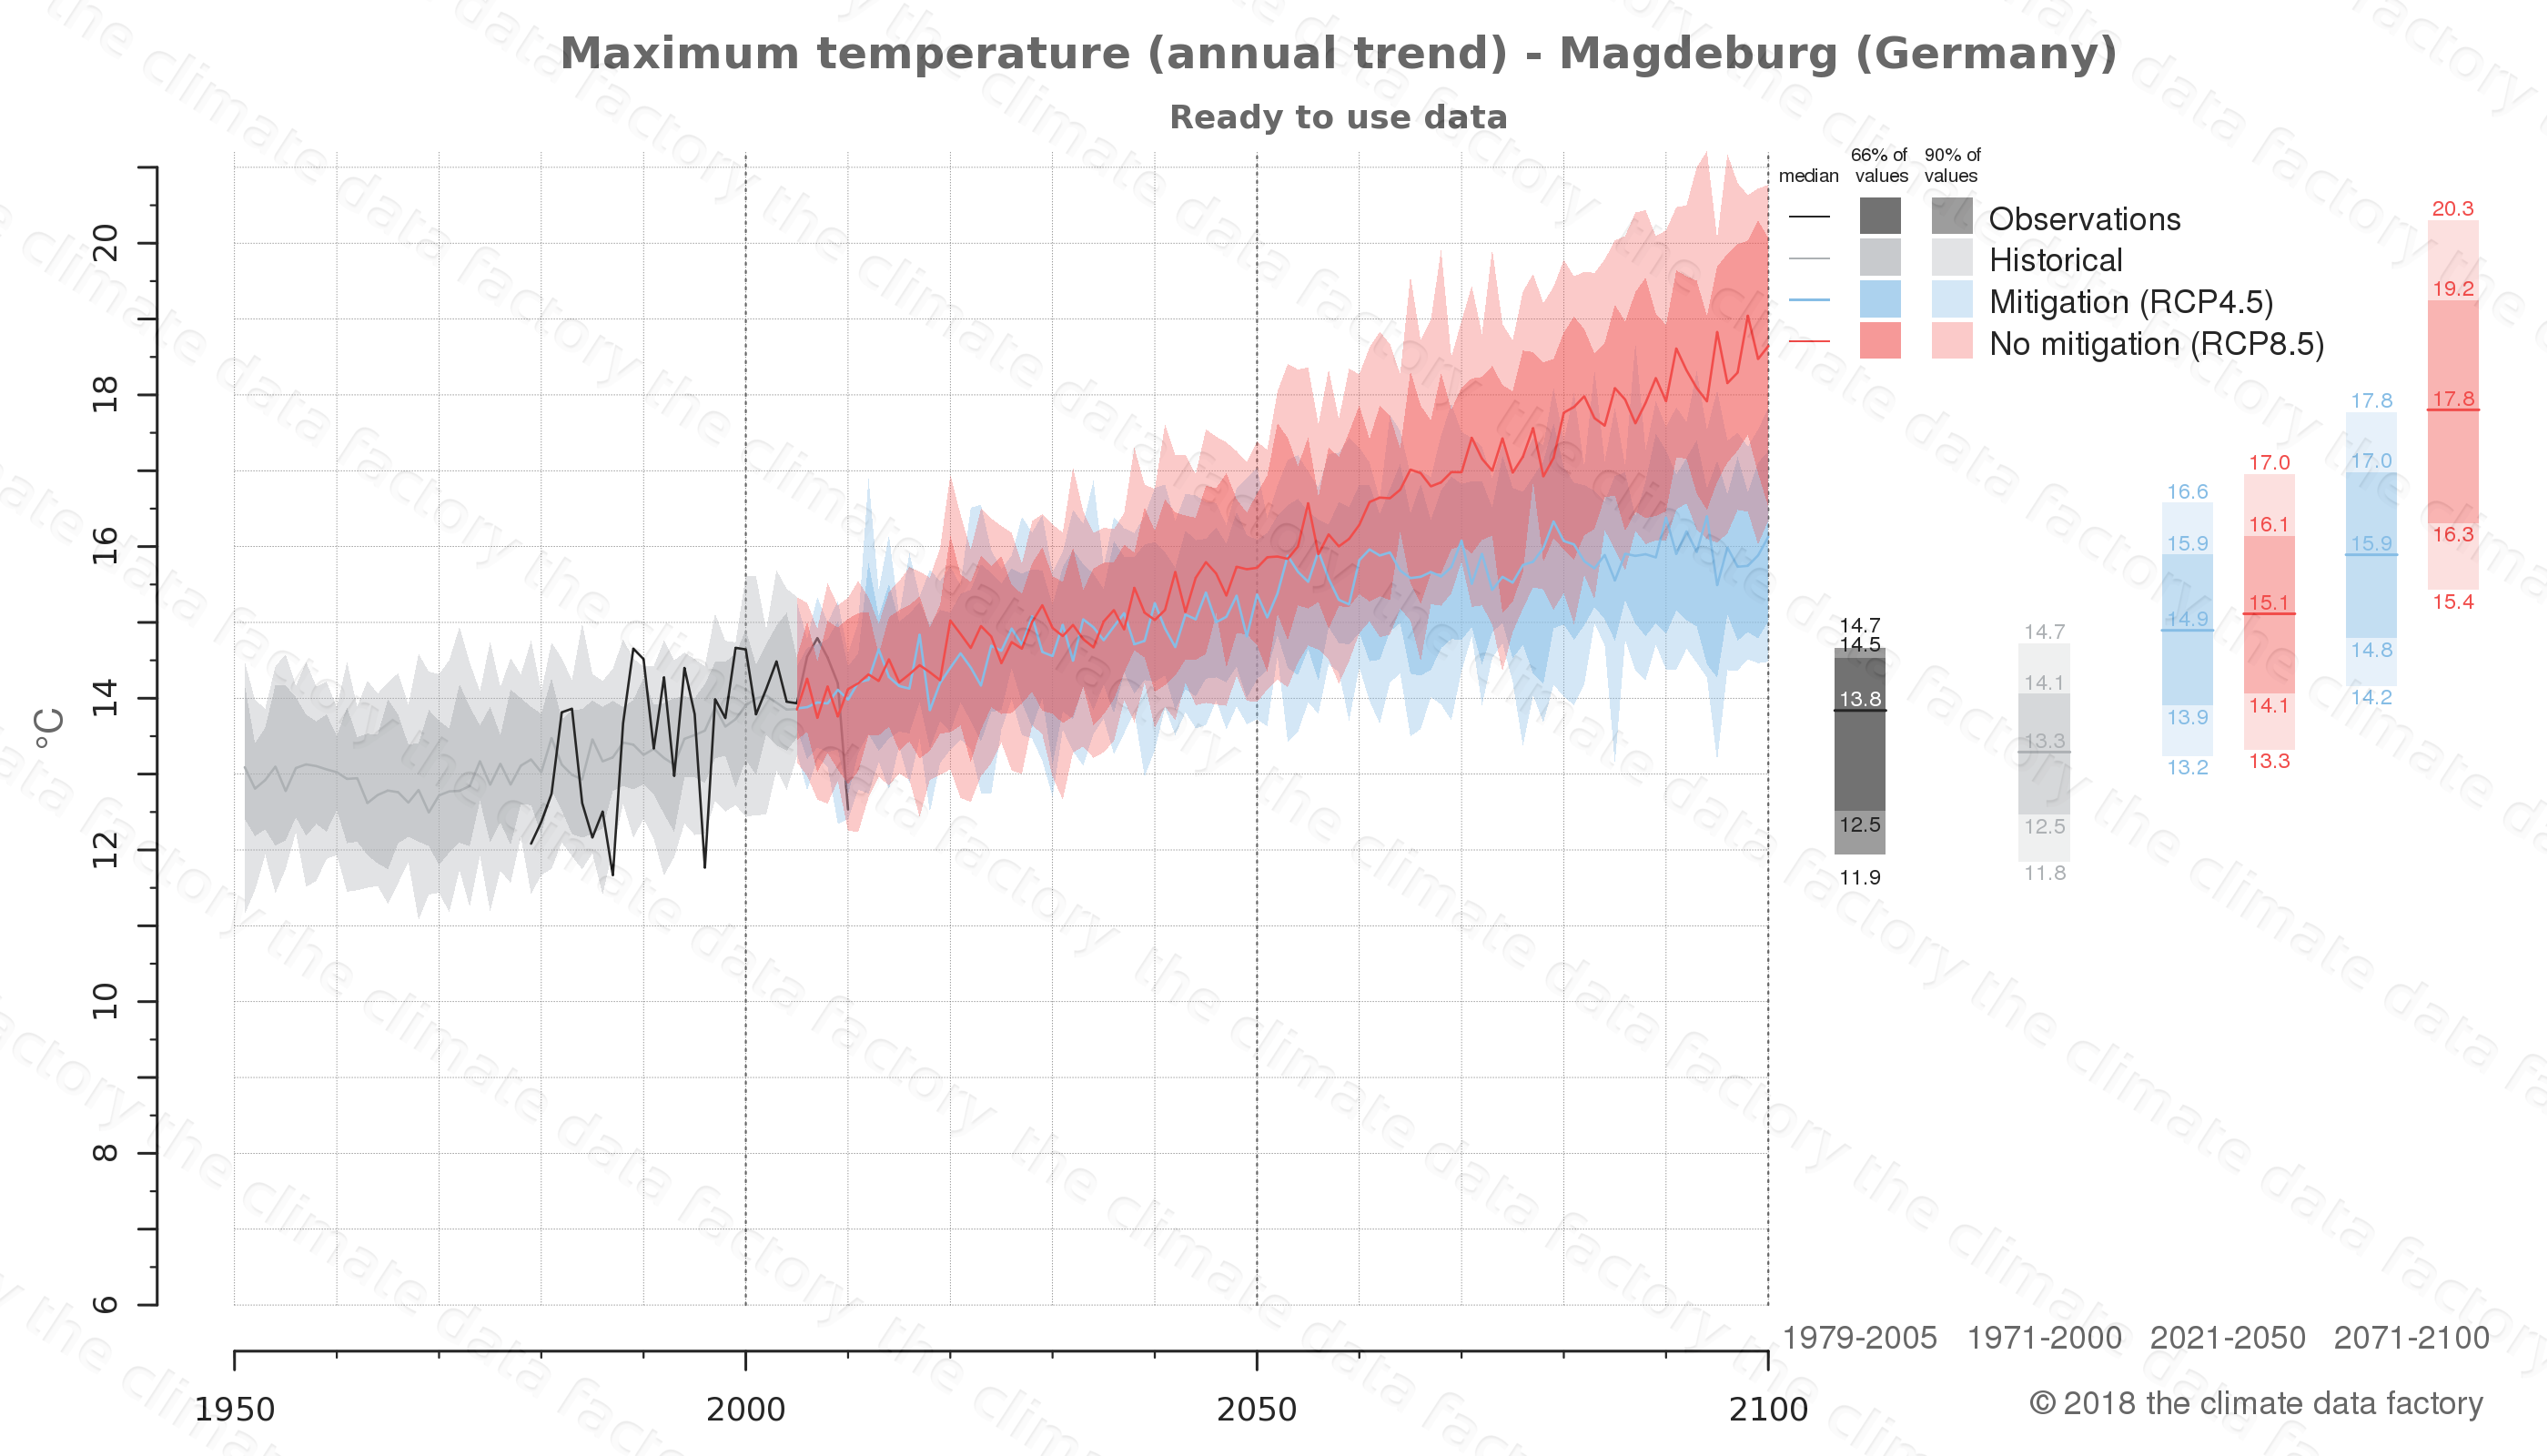 climate change data policy adaptation climate graph city data maximum-temperature magdeburg germany